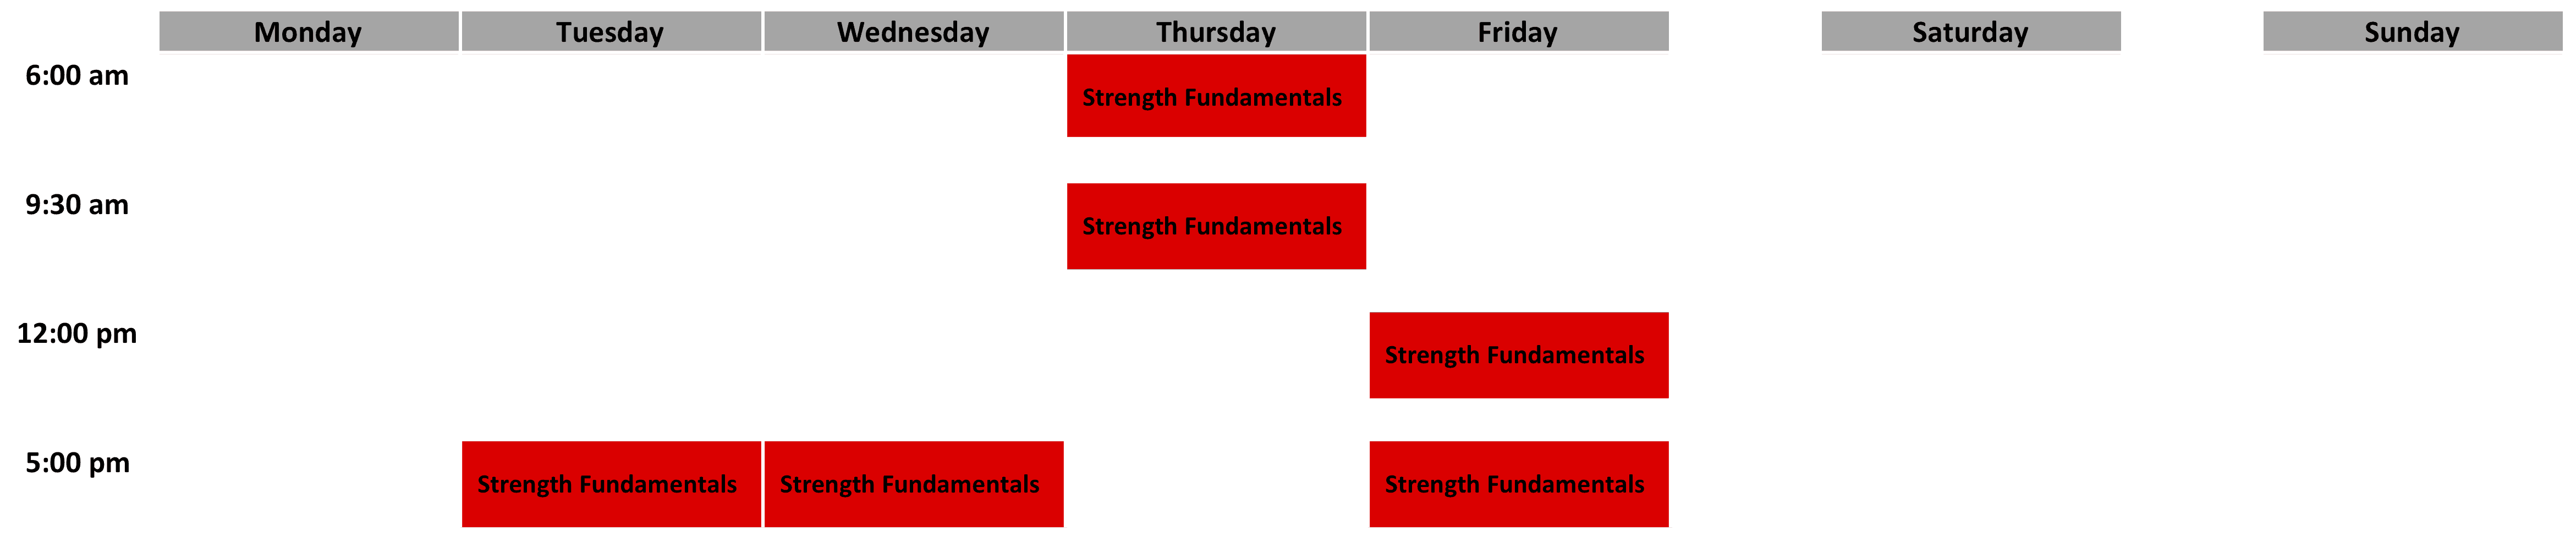 Strength Fundamentals Schedule - April 2019